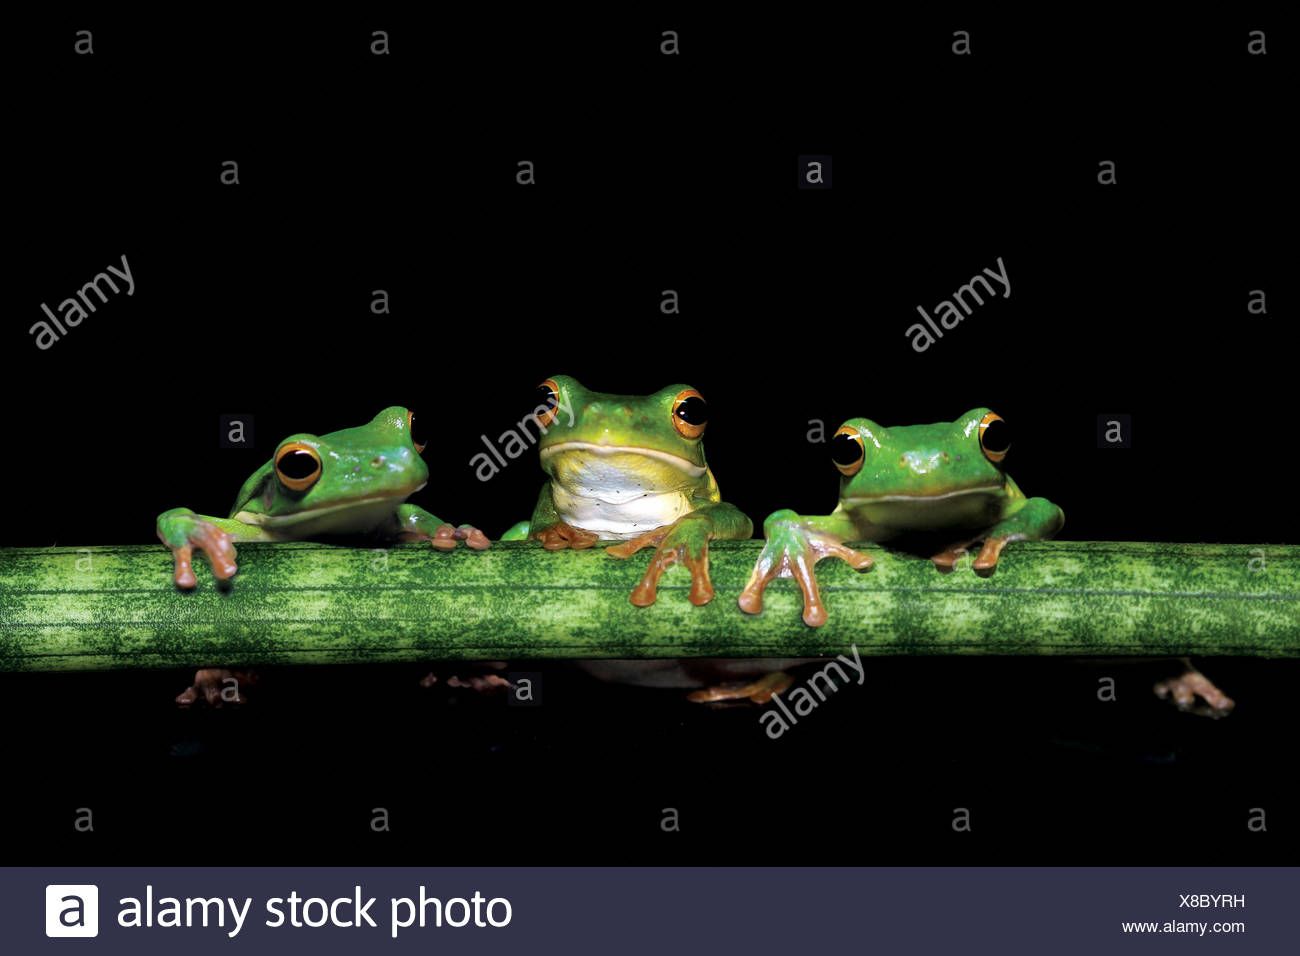 Three tree frogs holding onto a plant stem - Stock Image